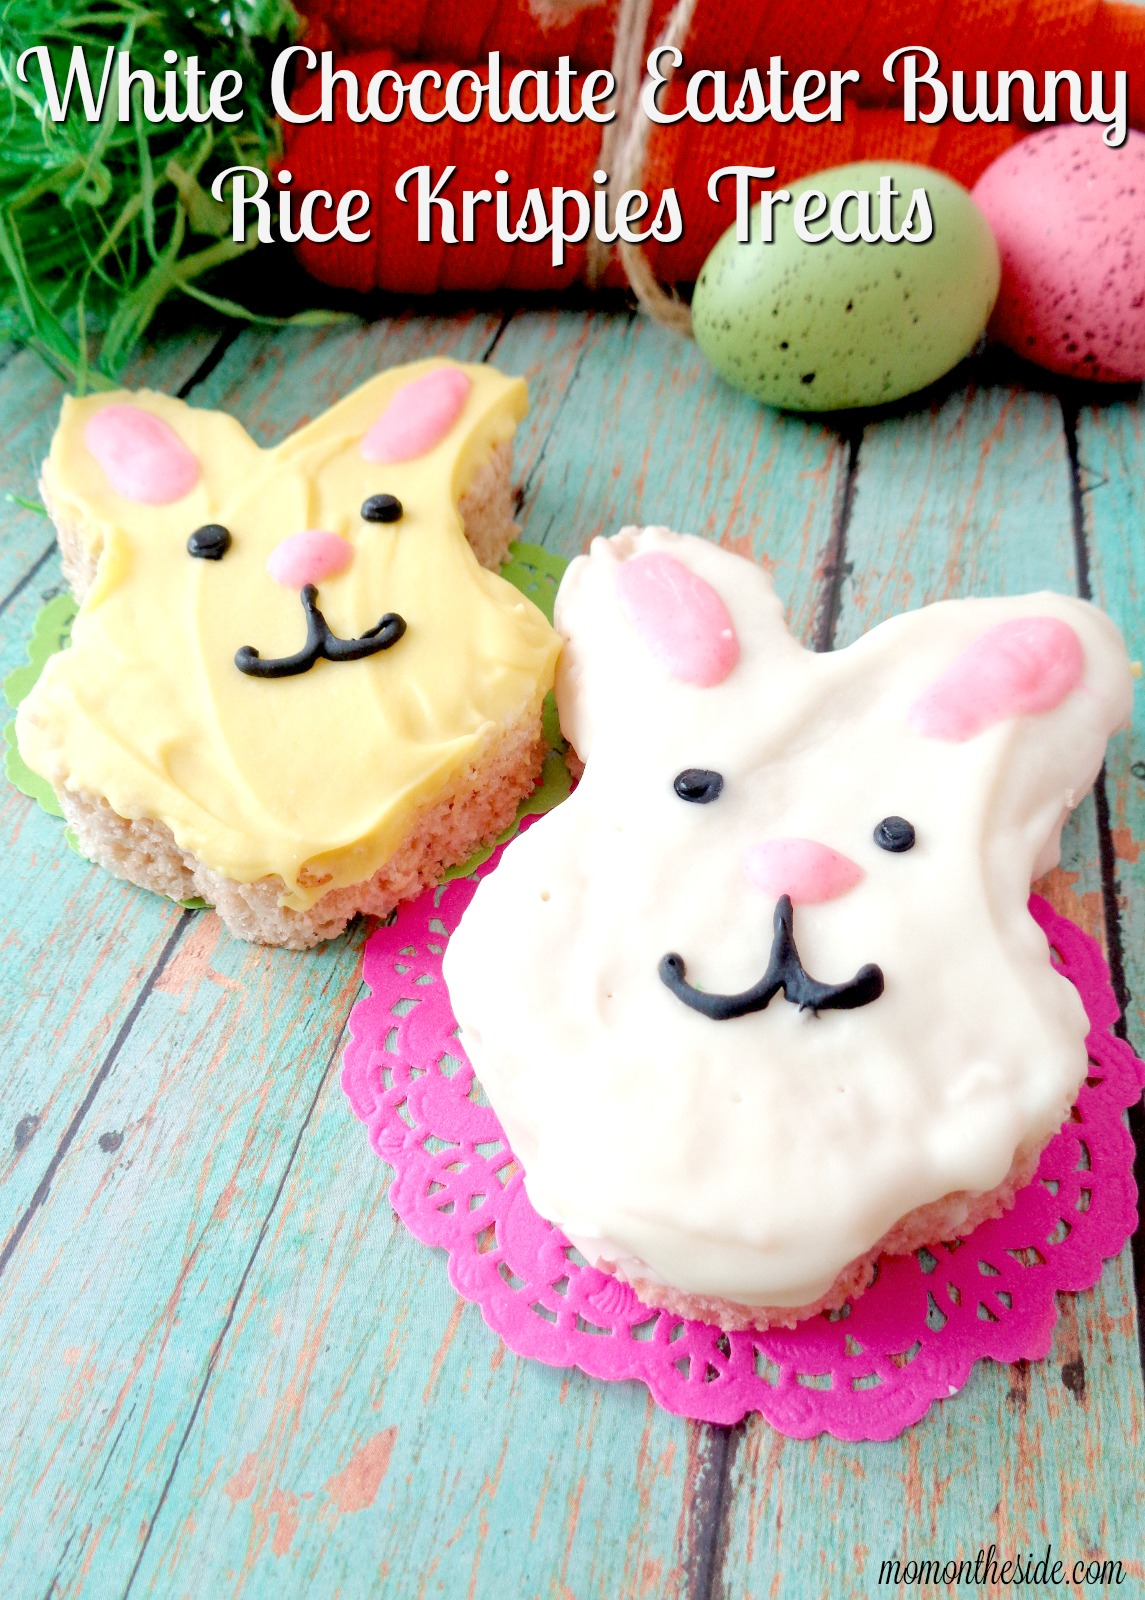 If you are looking for a fun Easter dessert, these White Chocolate Easter Bunny Rice Krispies Treats will put smiles on the faces of all your Easter party guests!